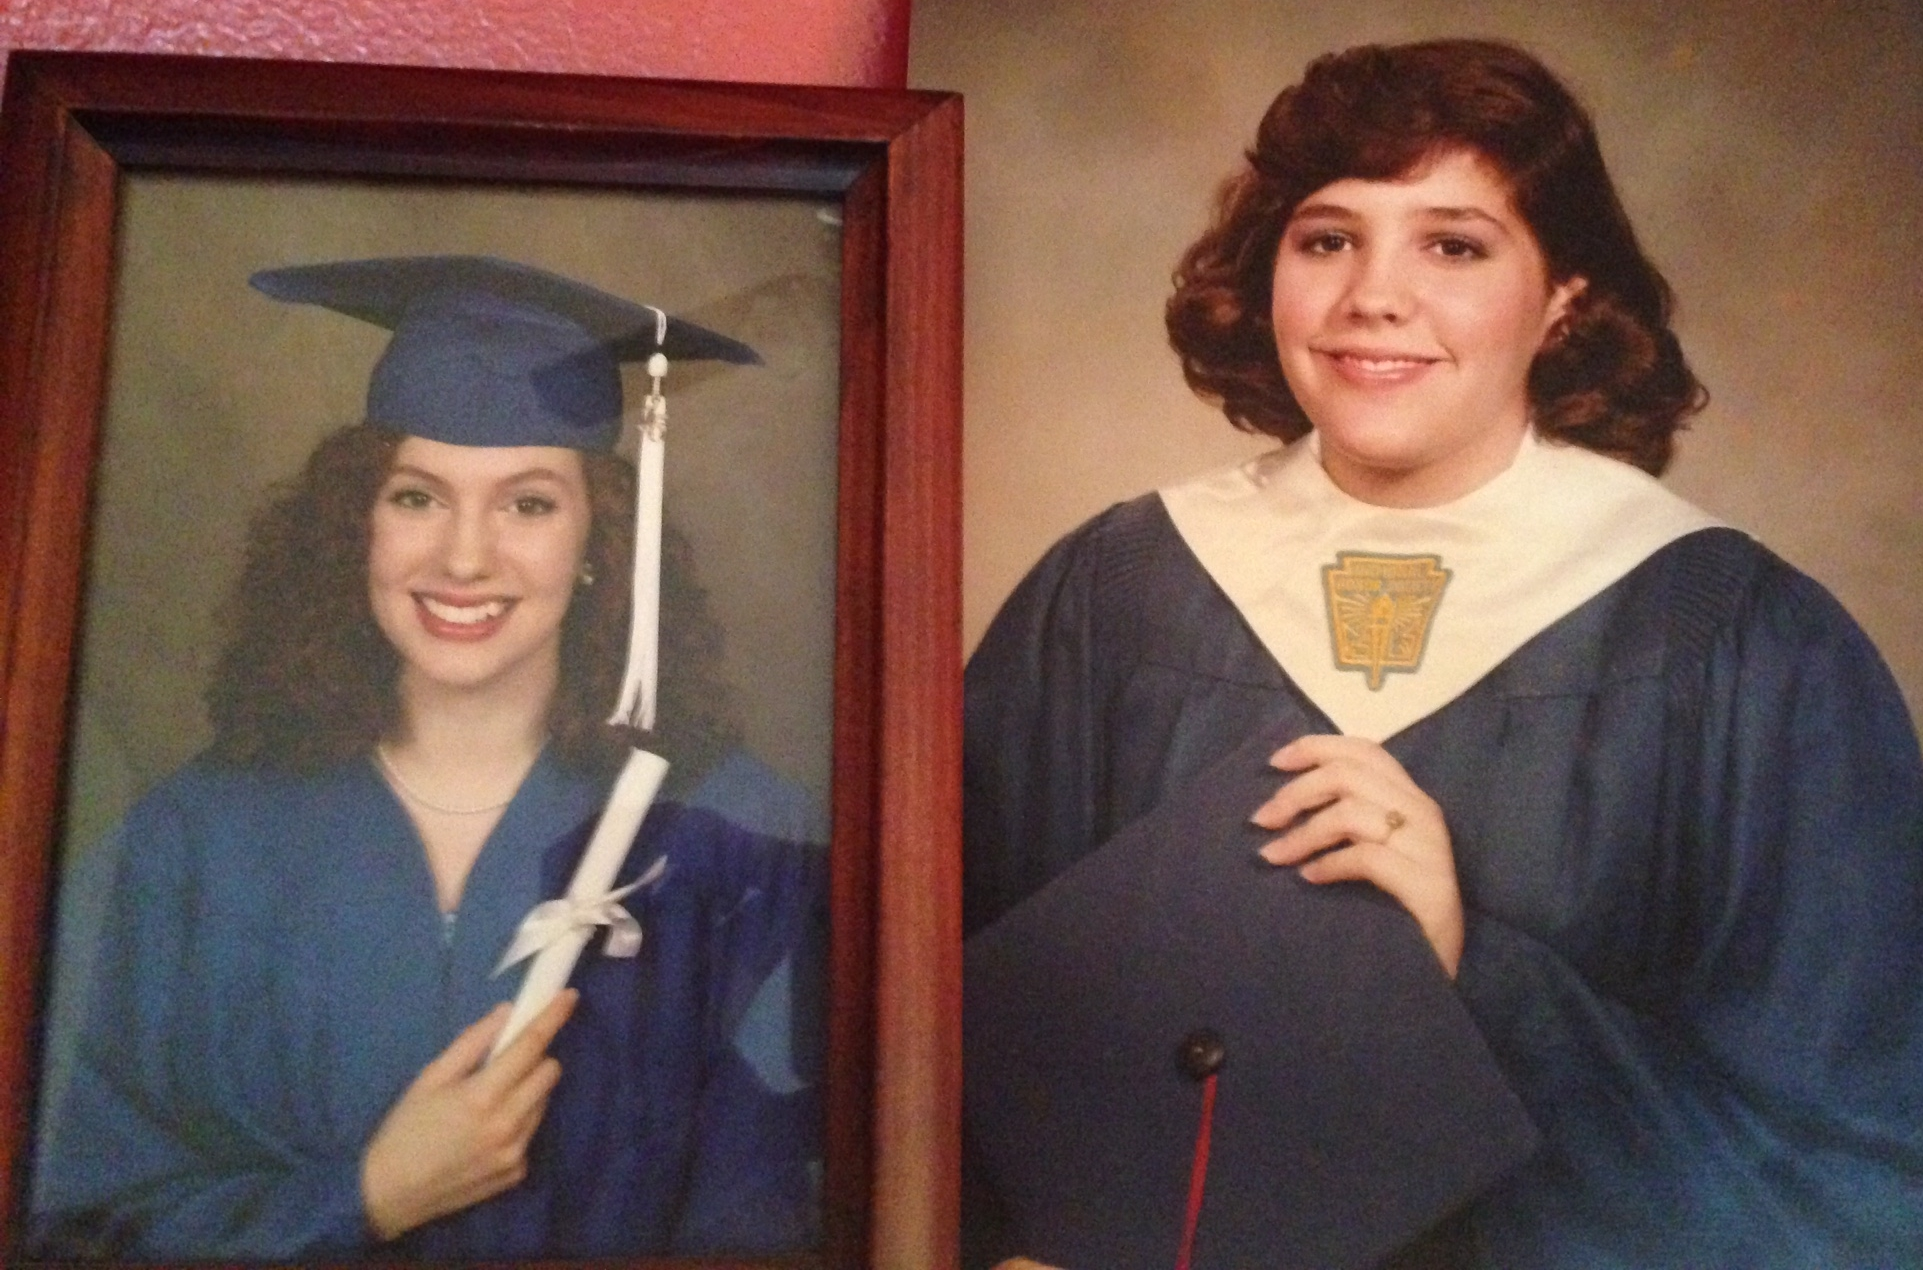 Two grad photos, 30 years apart. I wish I'd had half her poise, maturity and wisdom!